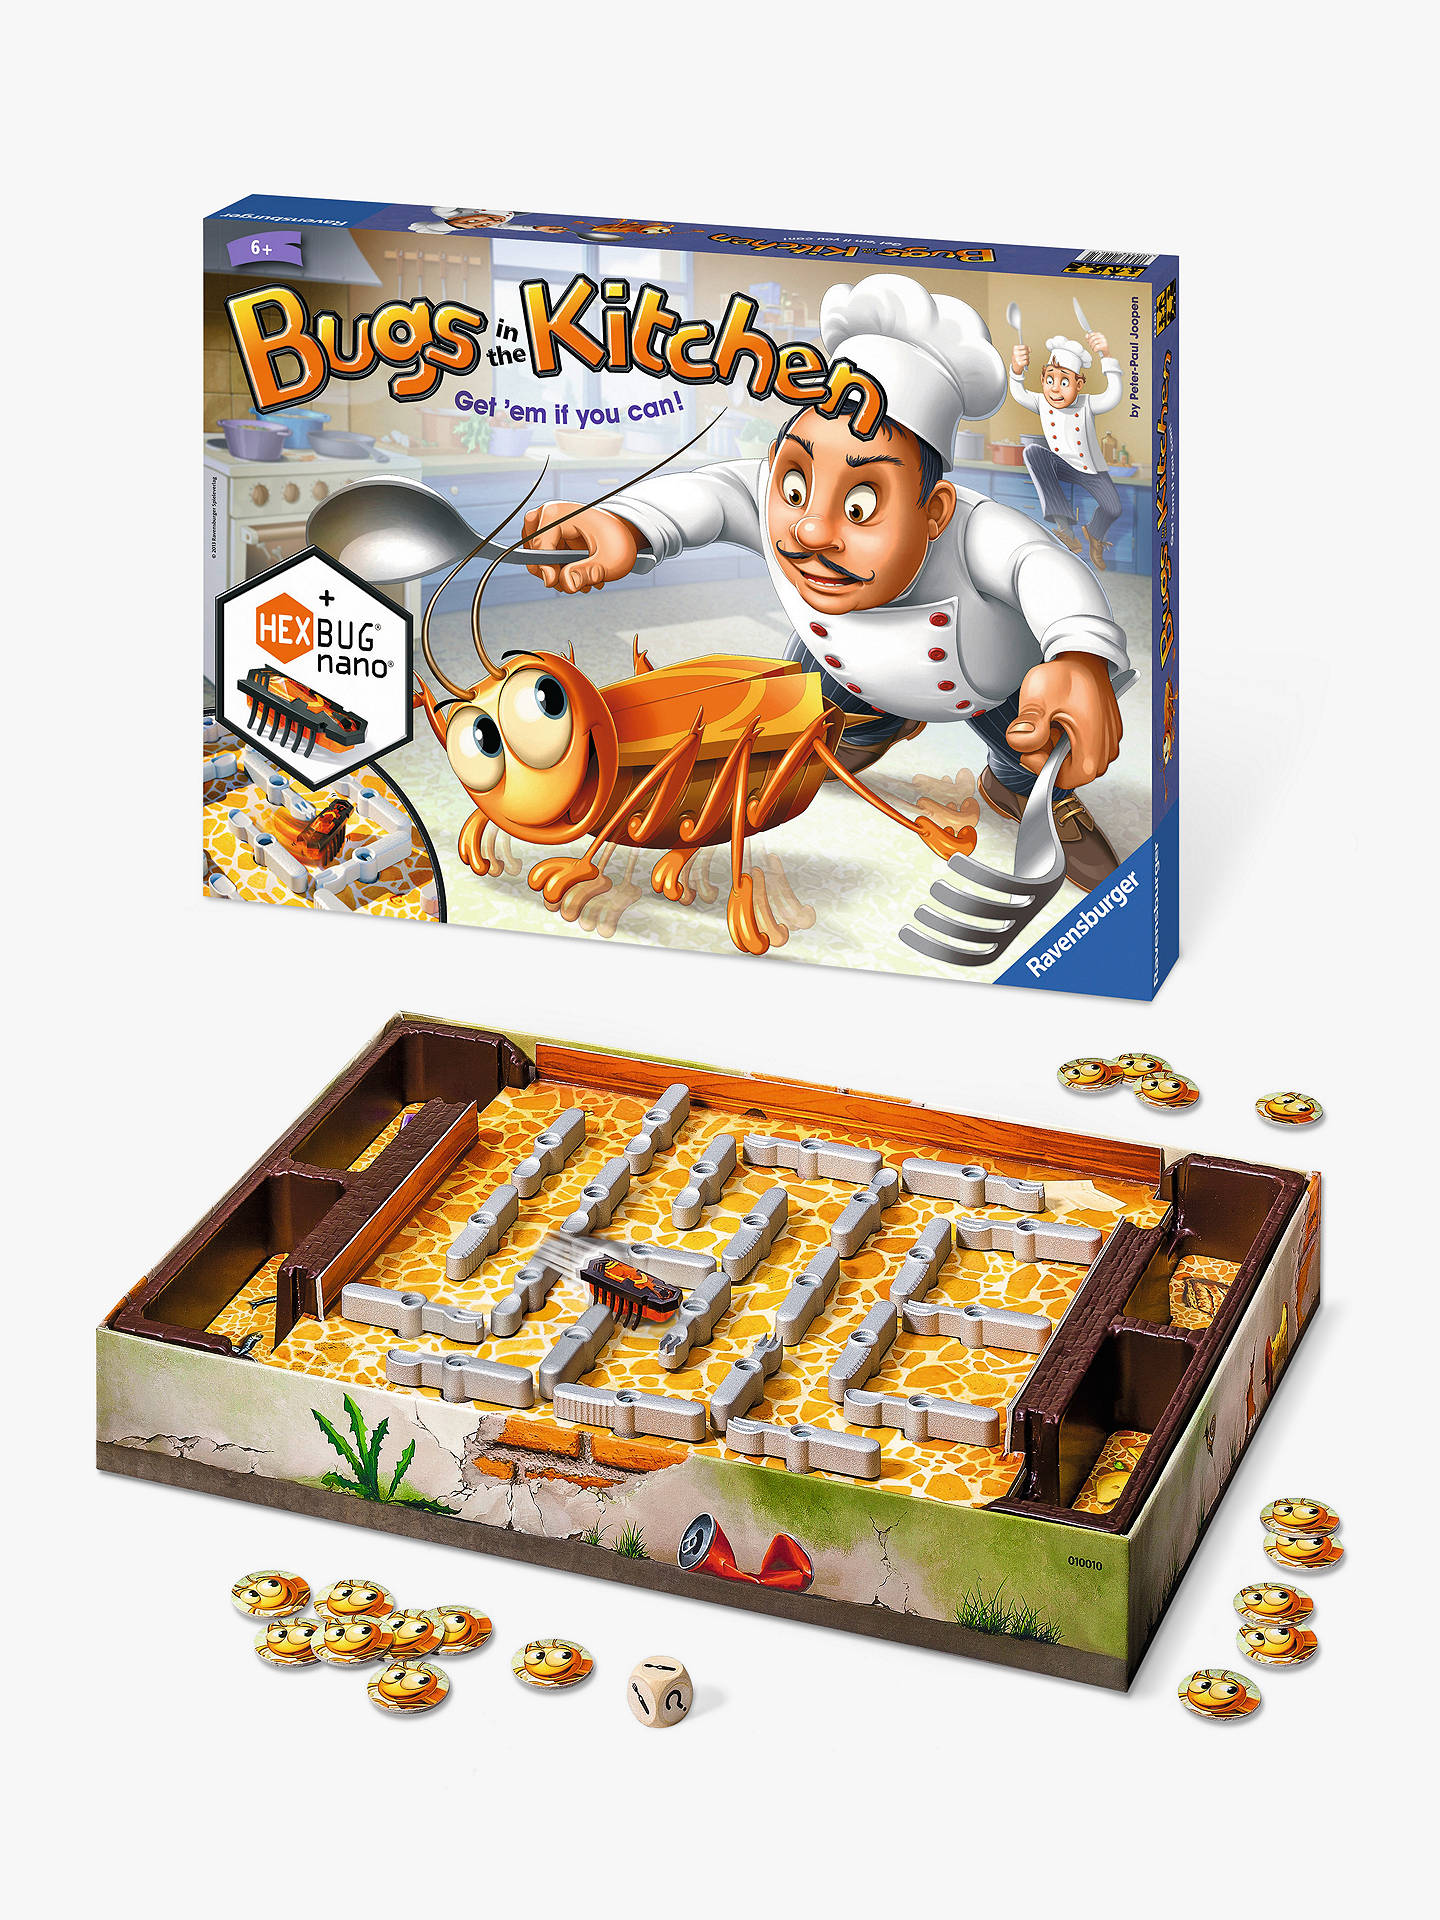 ravensburger bugs in the kitchen game with hexbug nano at john lewis rh johnlewis com